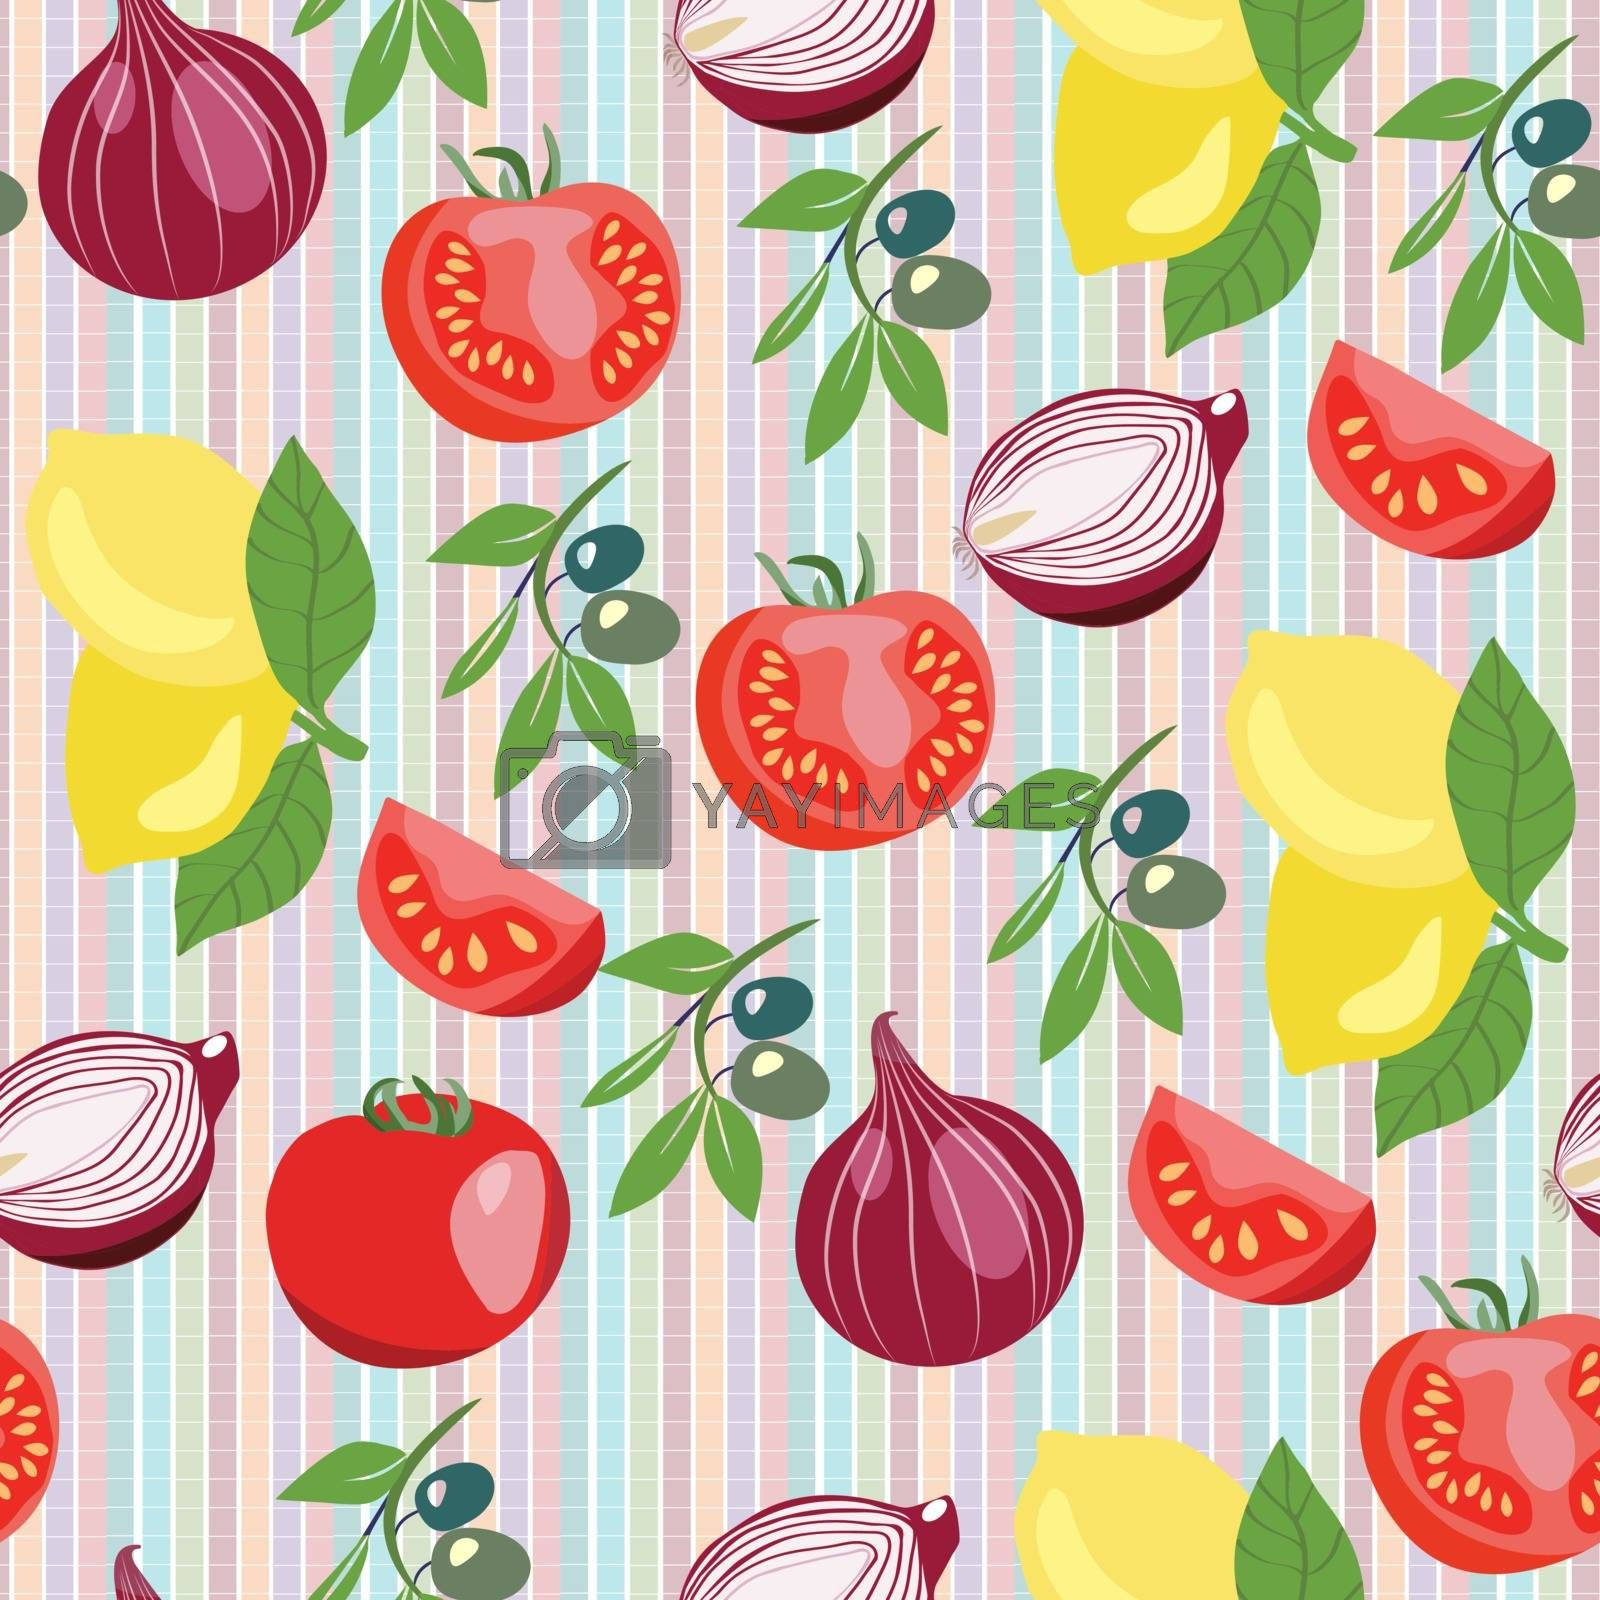 Vector seamless pattern of hand drawn vegetables collection on stripes background.